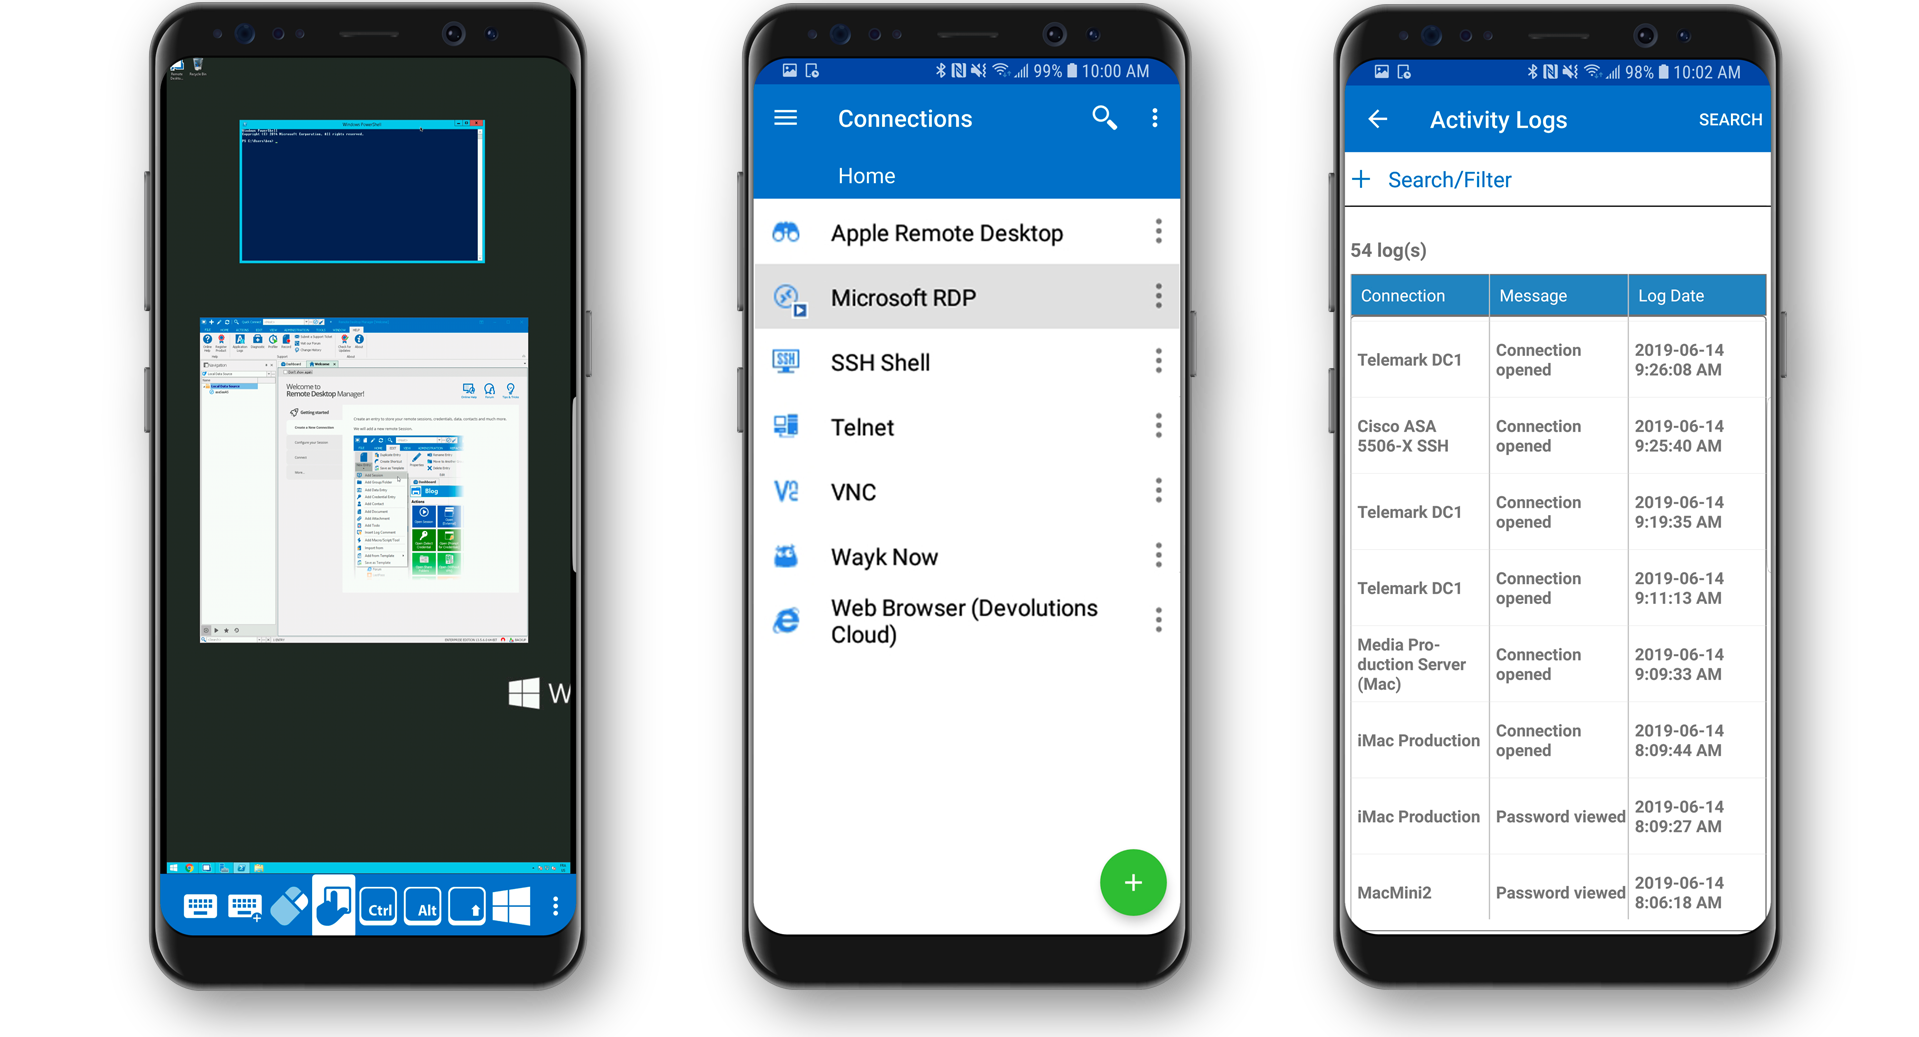 Easily Manage All Your Remote Connections From Your Android Device Android - Remote Desktop Manager